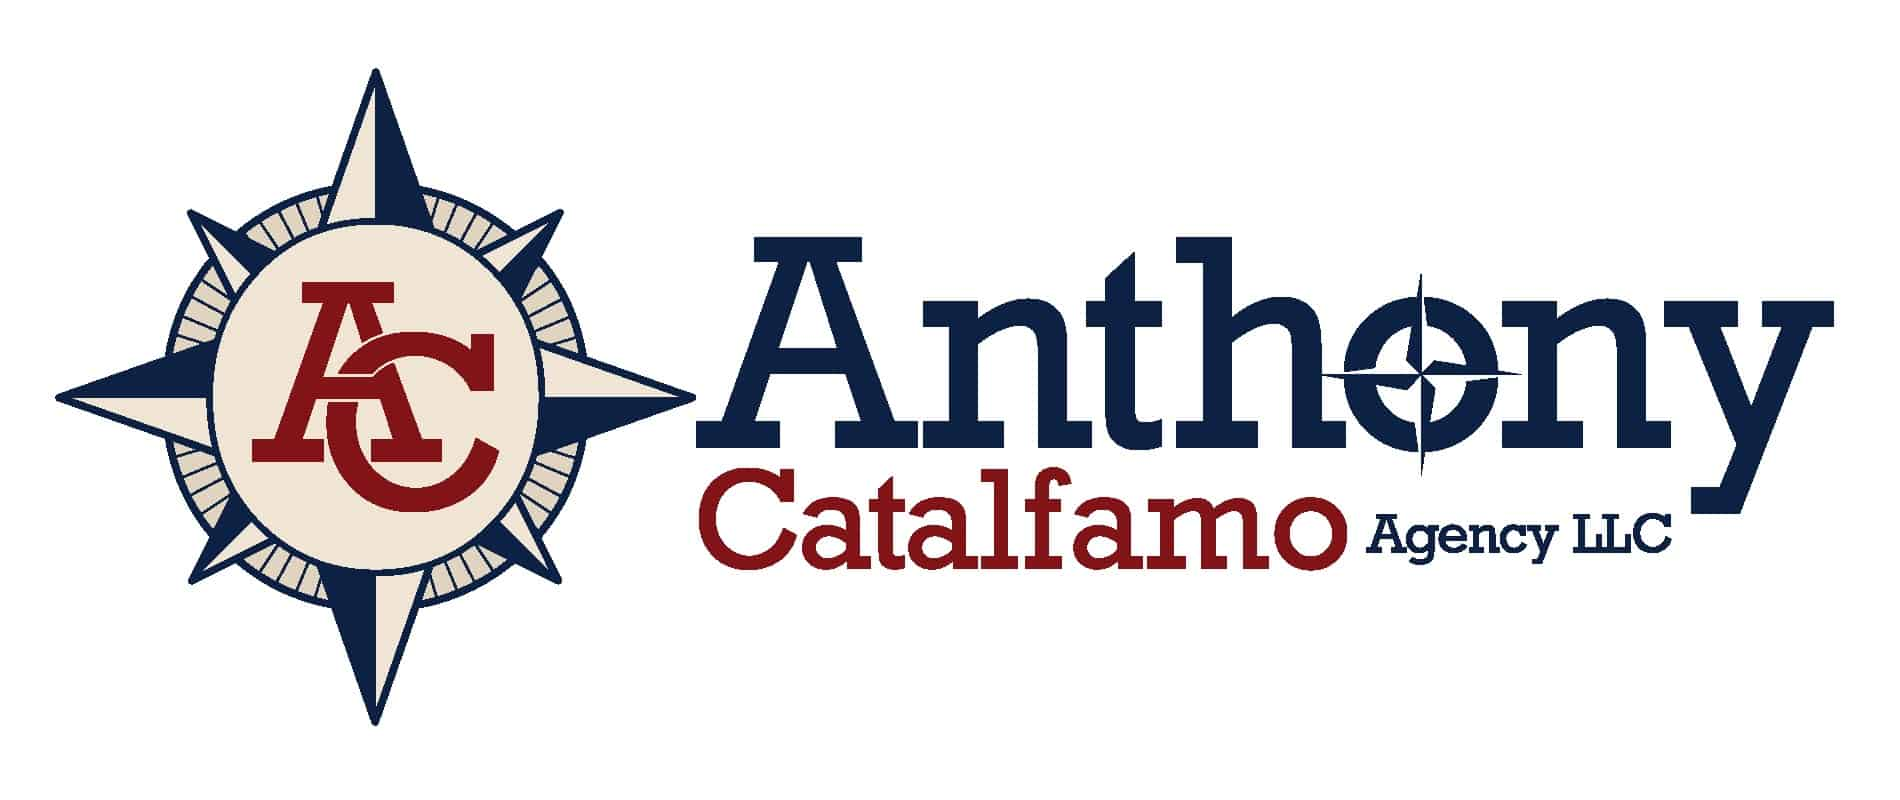 Catalfamo Agency